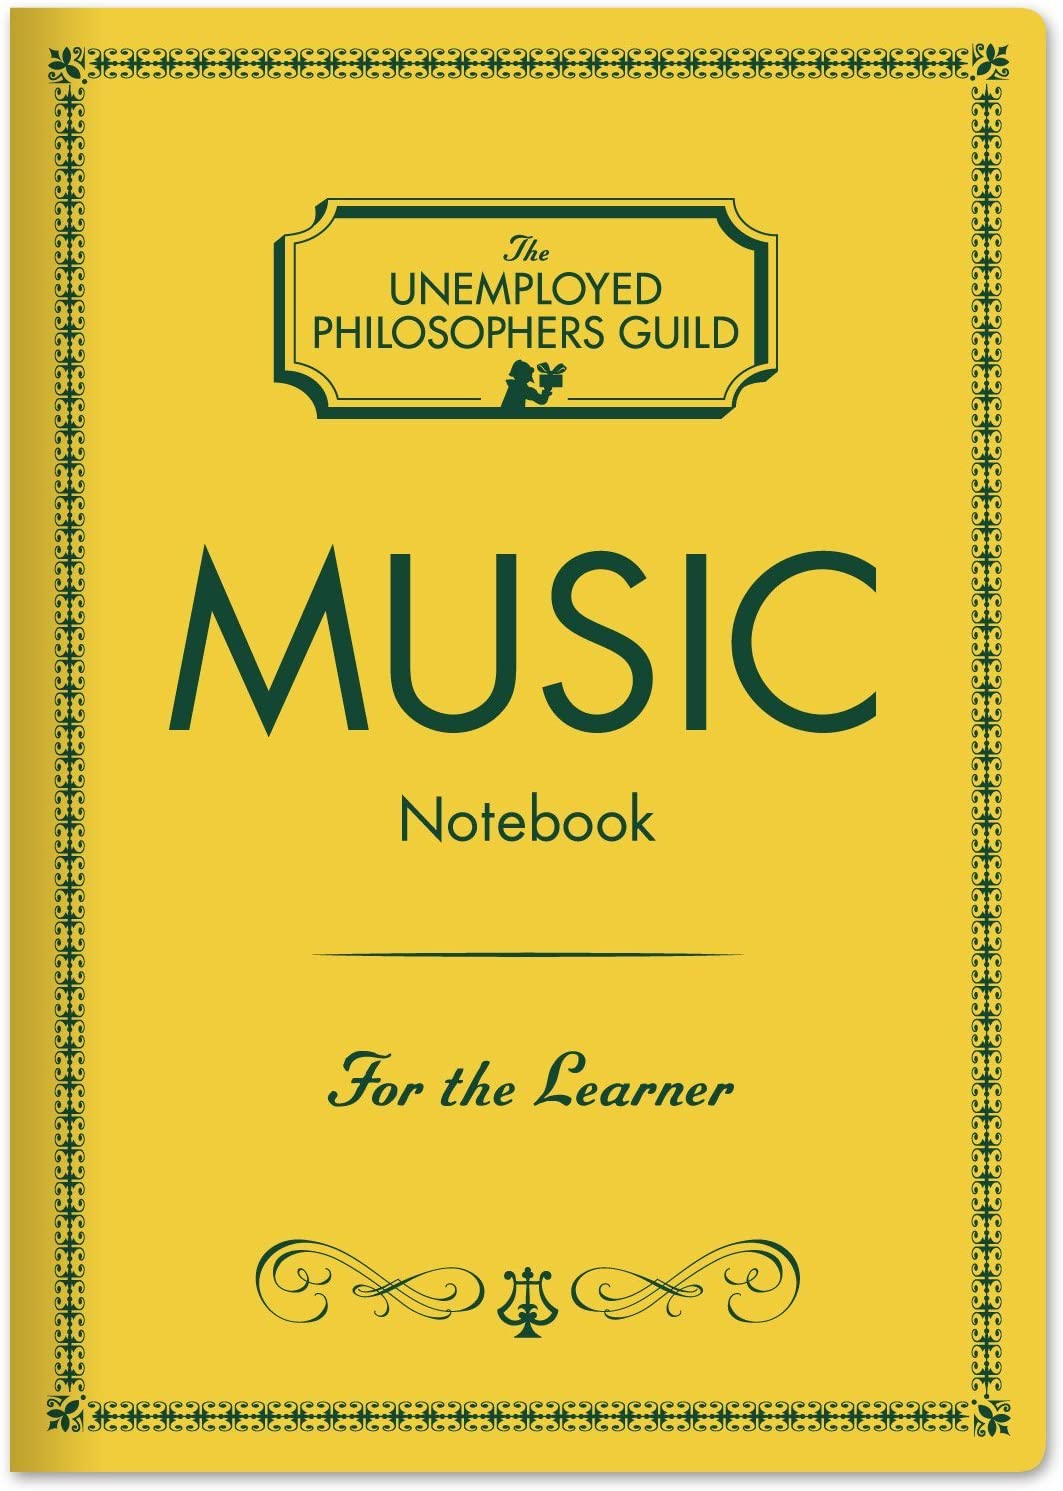 7 x 4.75 Music Composer Notebook with Sheet Music Pages